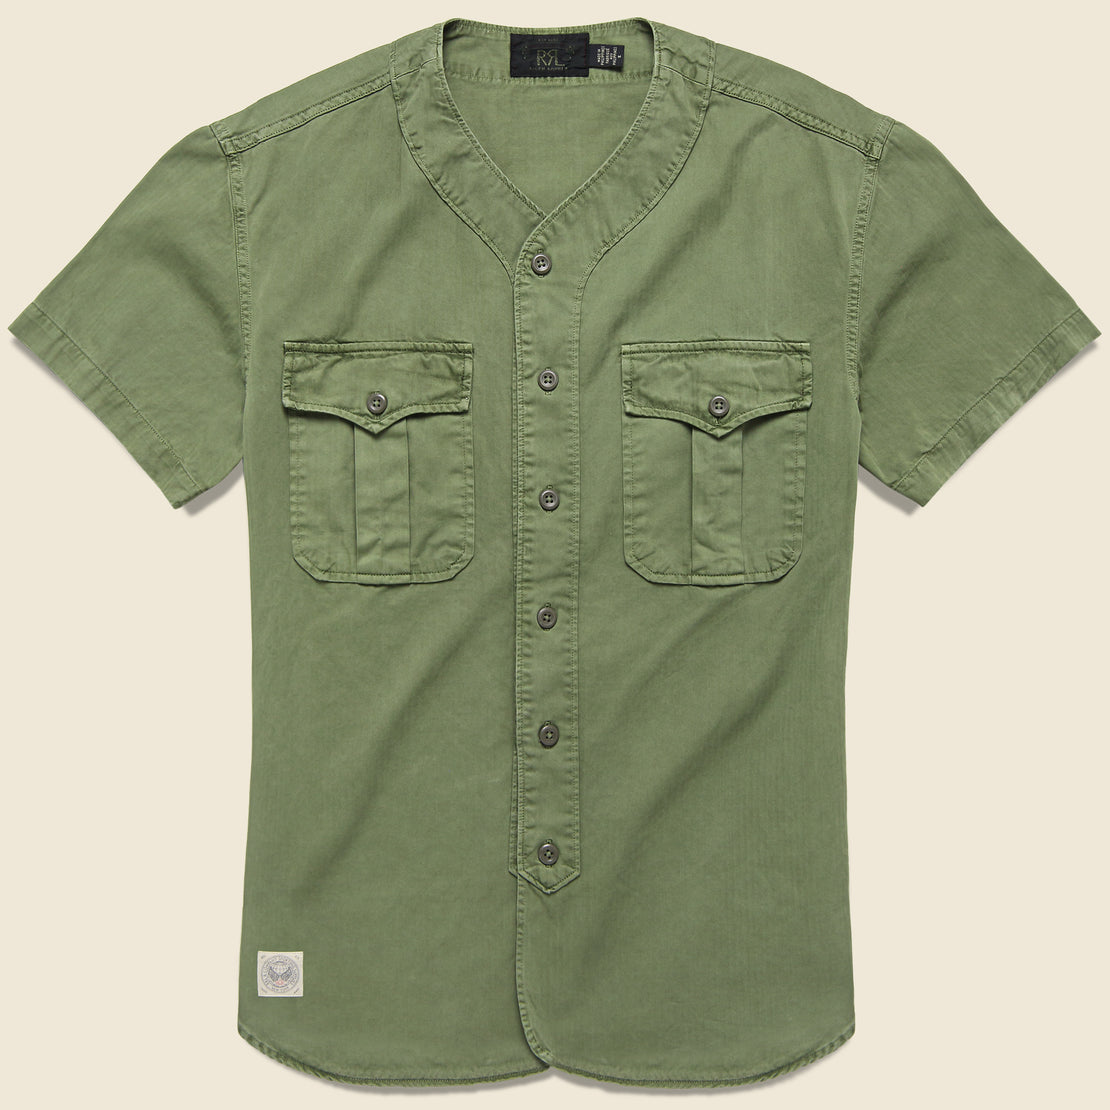 RRL Moore Herringbone Baseball Shirt - Dusty Olive